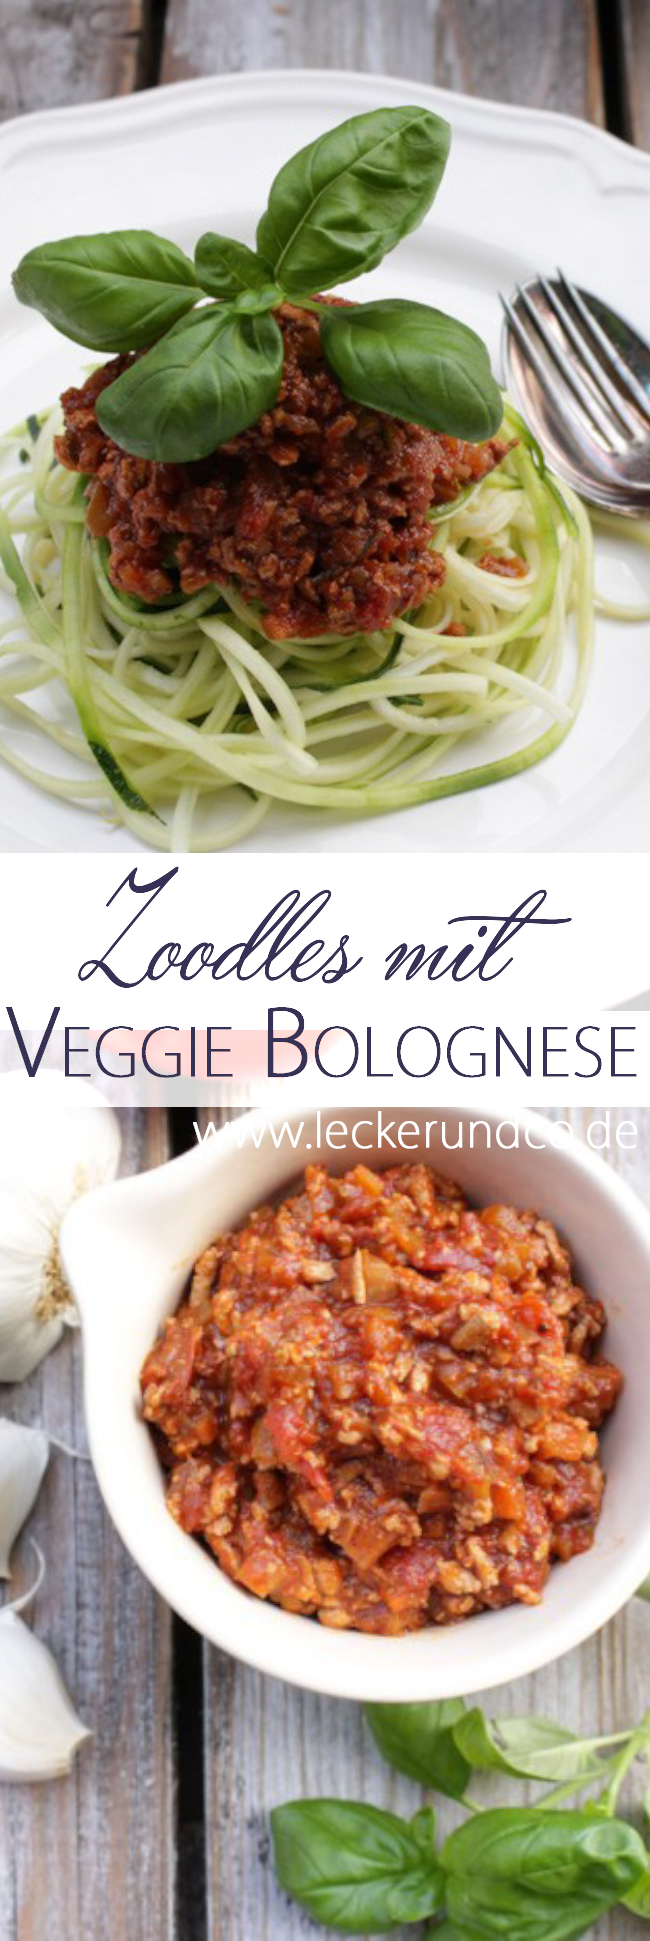 zoodles mit vegi bolognese vegan die besten pasta rezepte pinterest. Black Bedroom Furniture Sets. Home Design Ideas